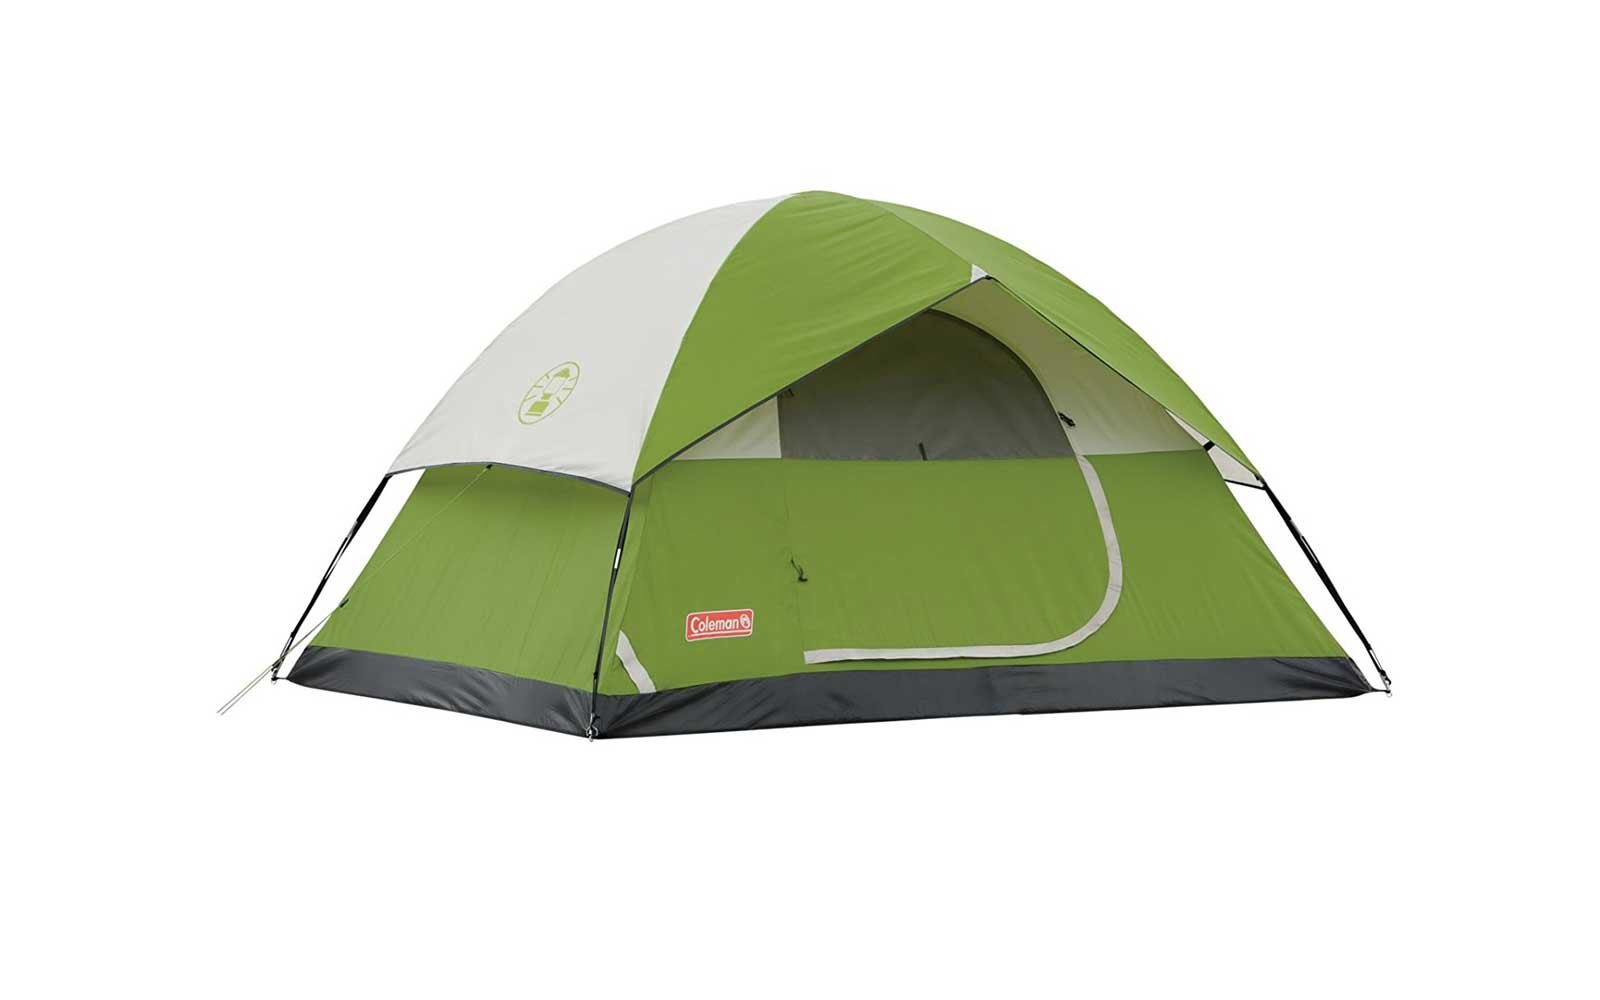 Car-camping Tent: Coleman 'Sundome' 4-person Tent